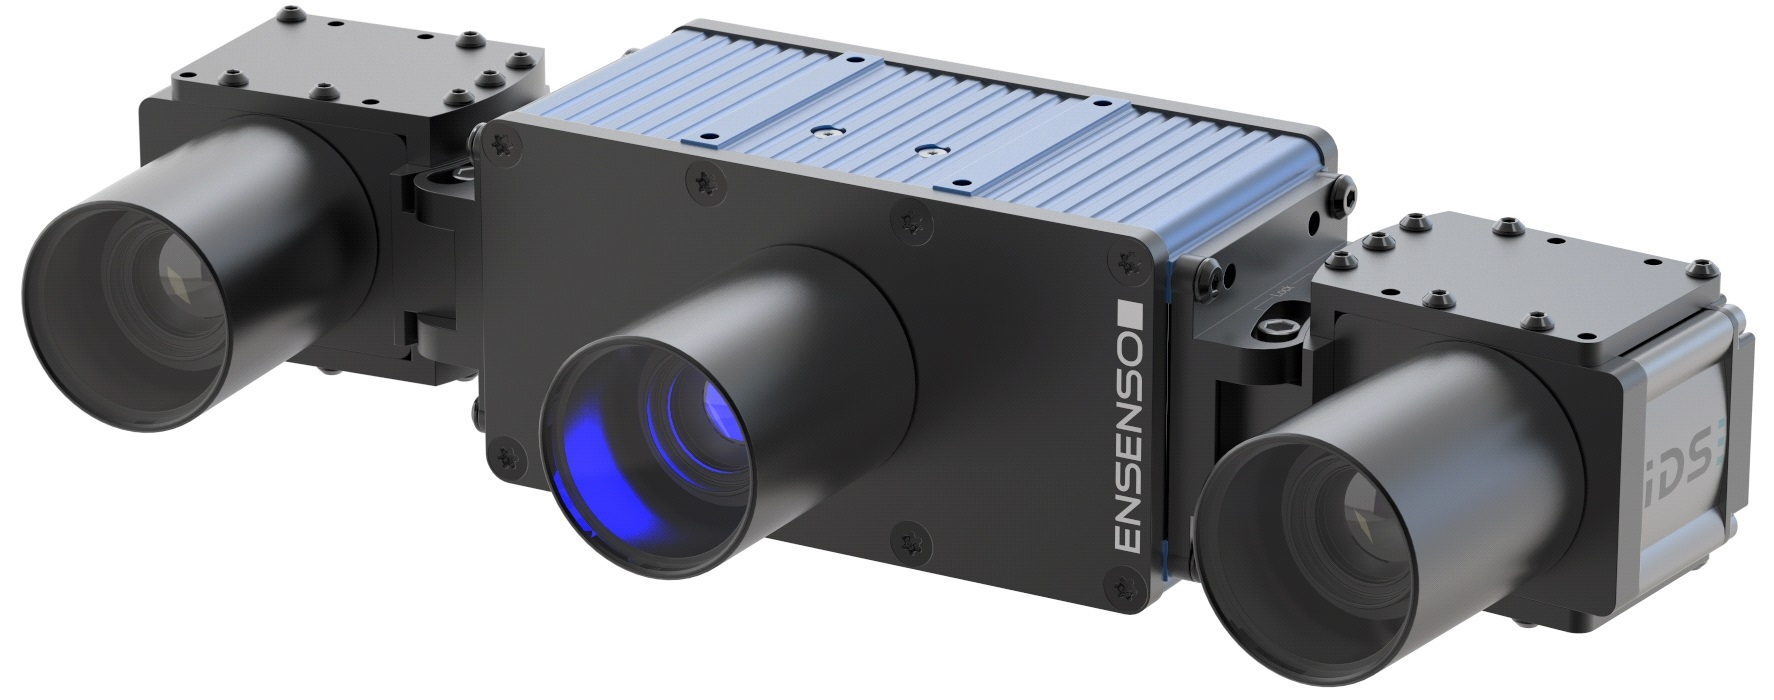 New models of the Ensenso X 3D camera